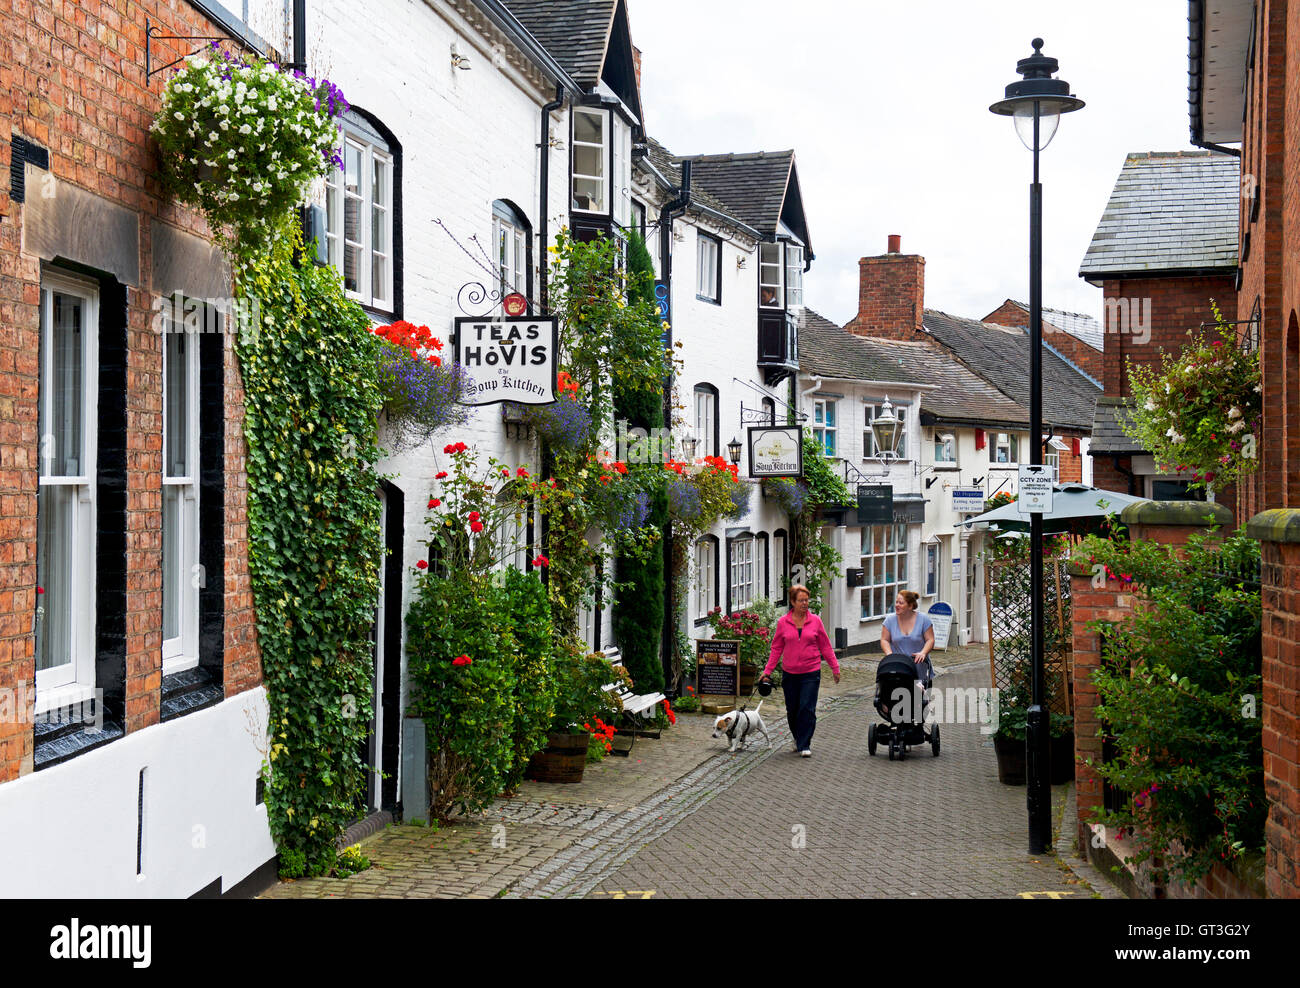 Church Lane, Stafford, Staffordshire, England UK - Stock Image